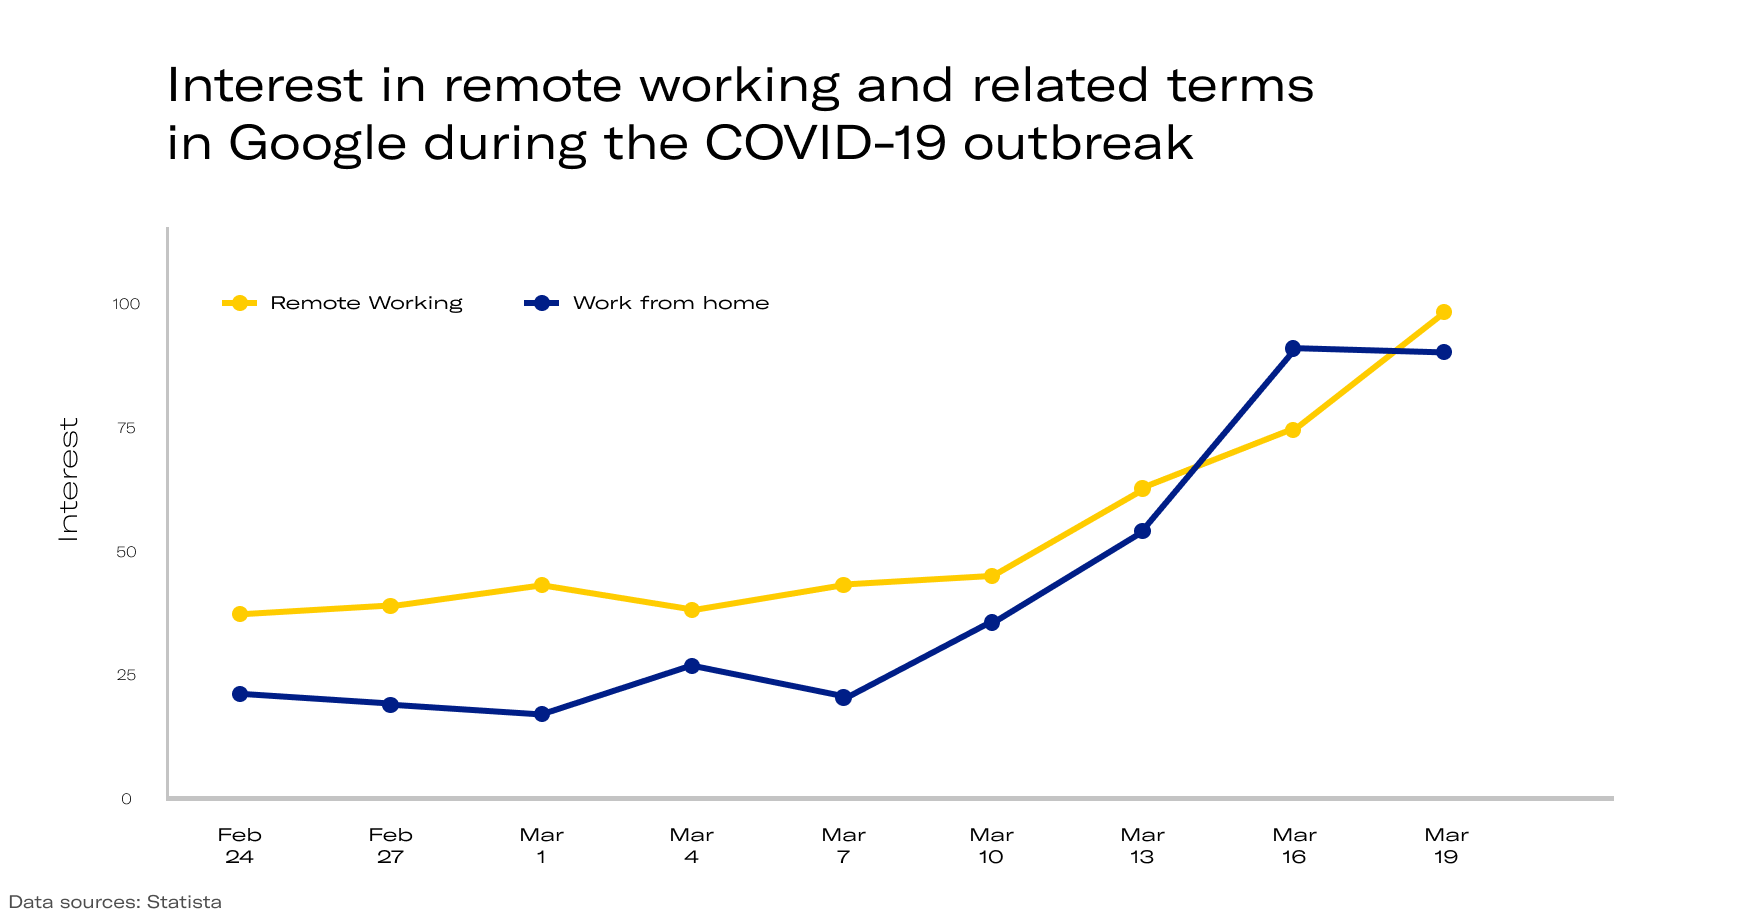 Interest in remote working during the COVID-19 outbreak